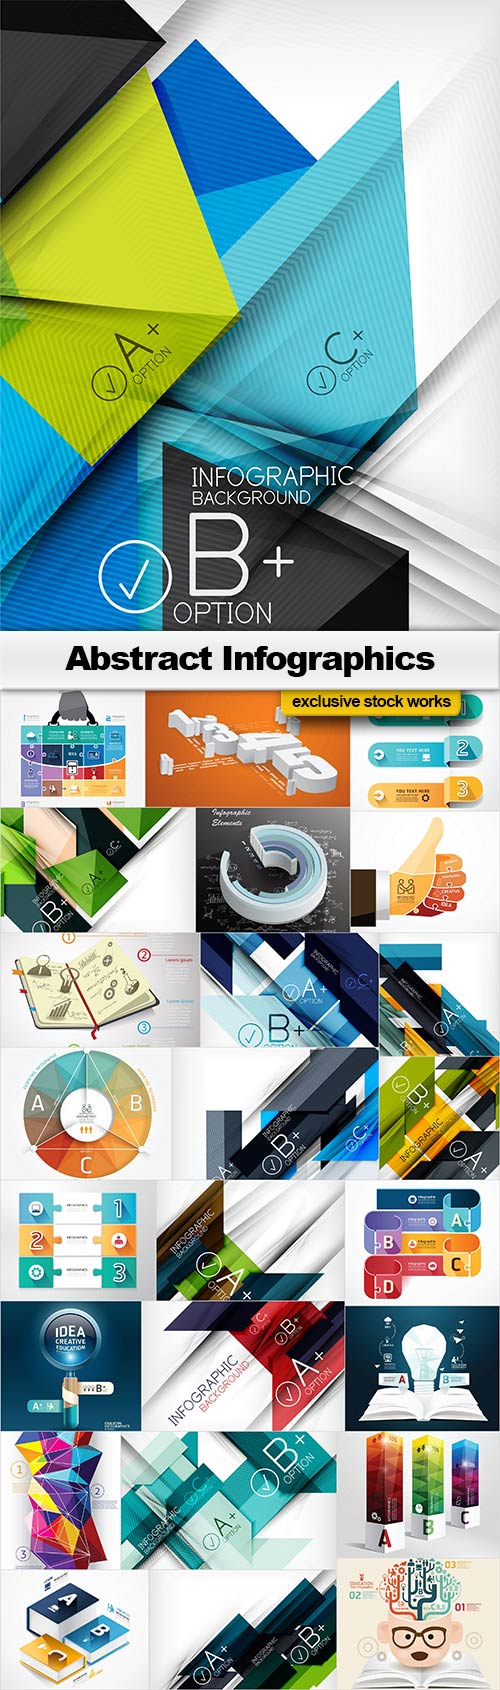 Abstract Infographics - 25x JPEGs